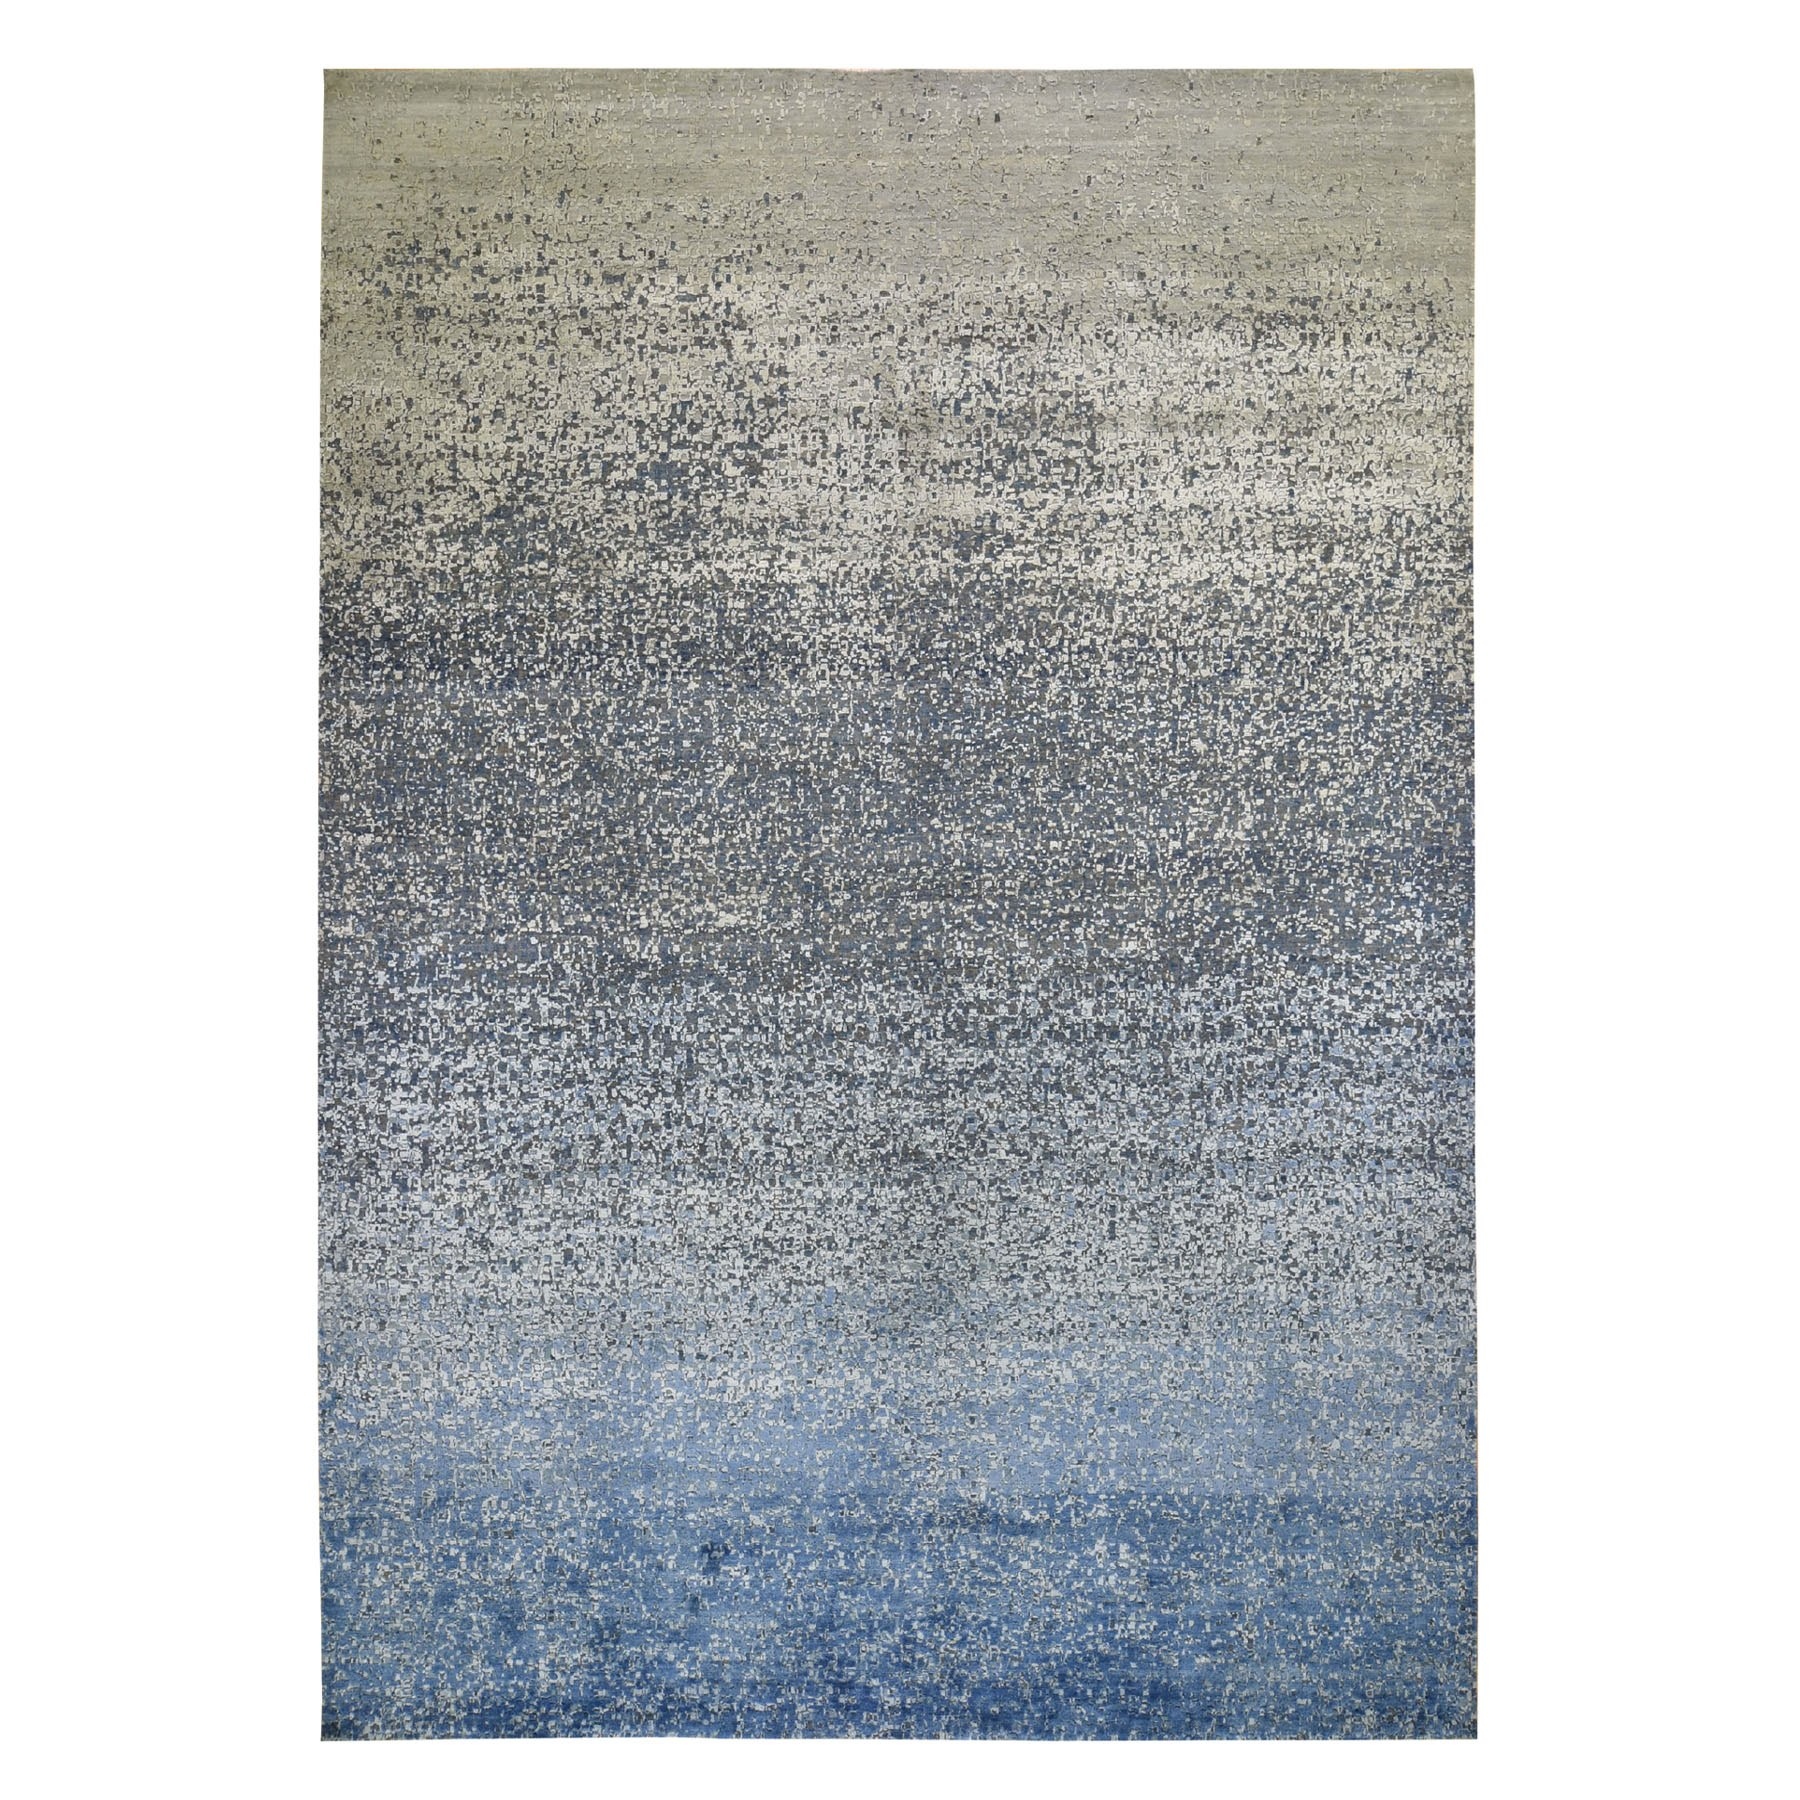 10'X14' Pure Silk With Textured Wool Dissipating Design Hand Knotted Oriental Rug moad8ede